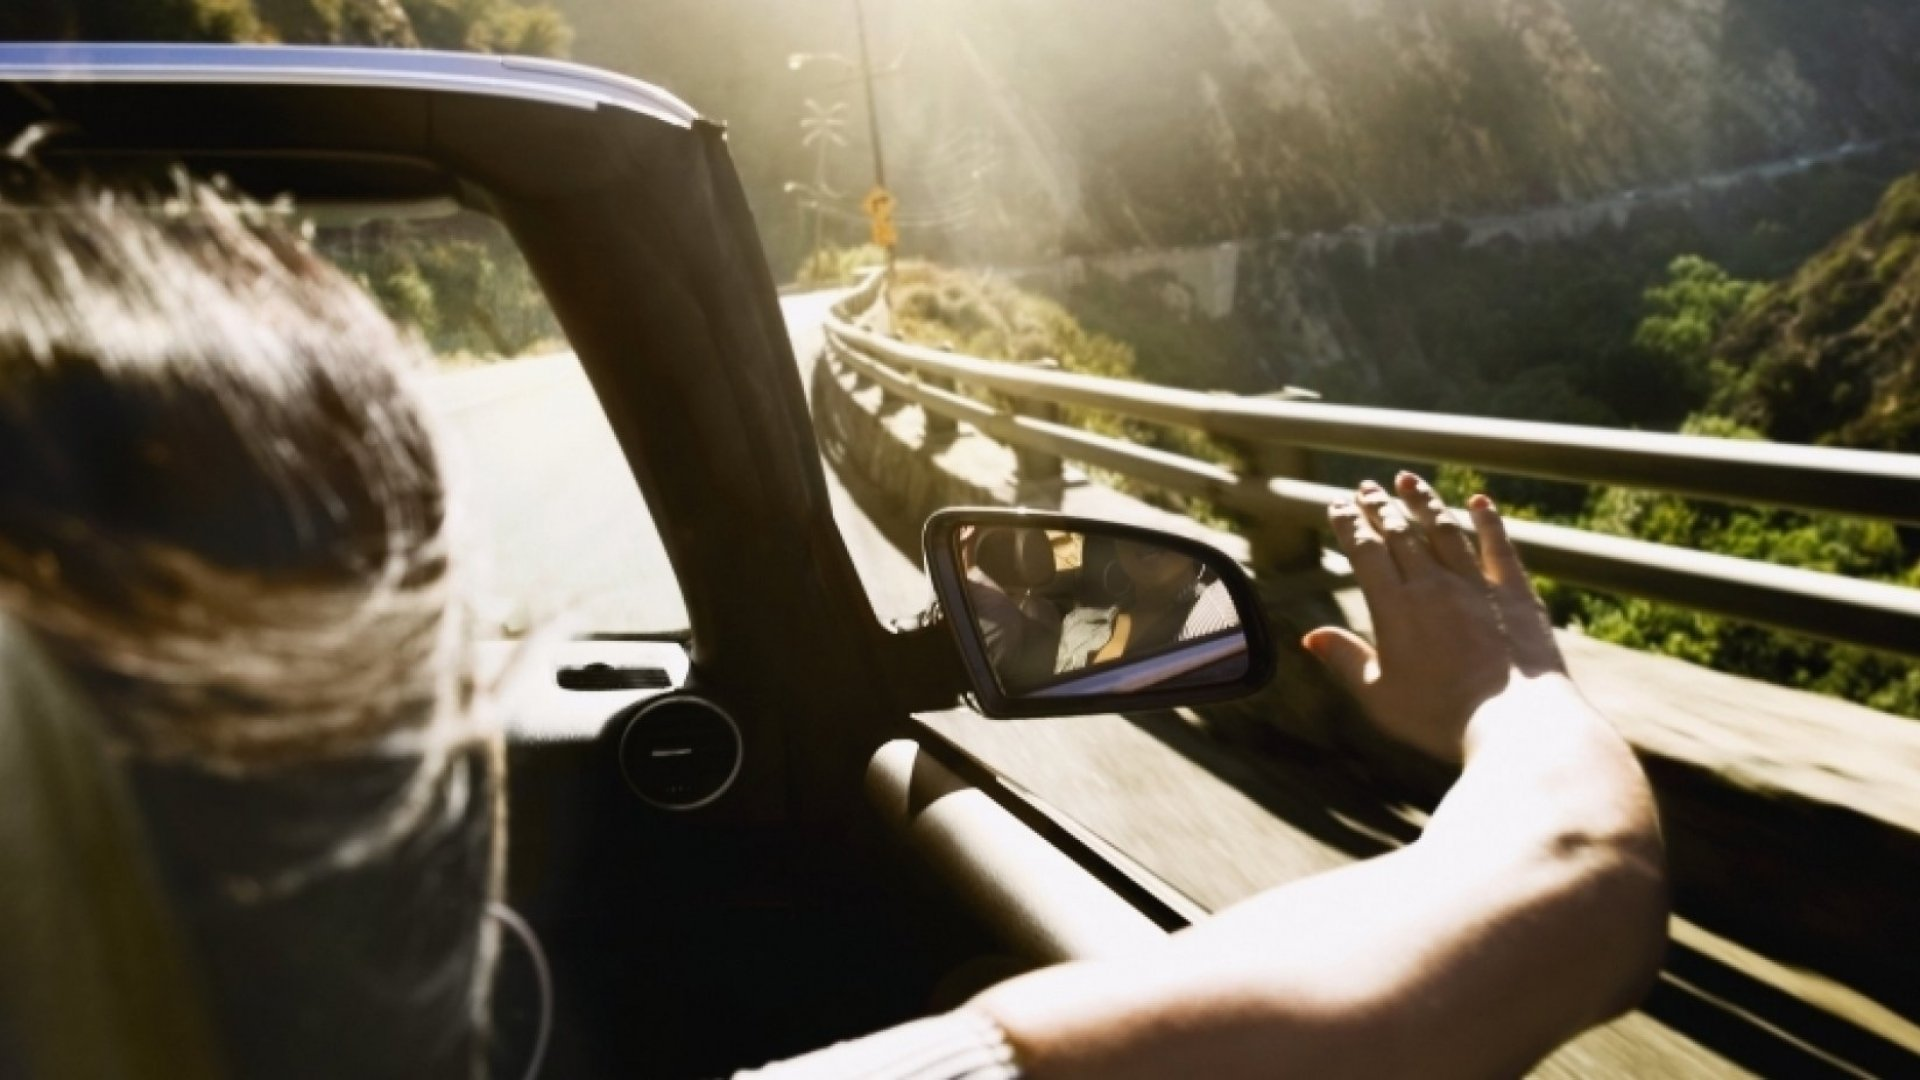 12 Ways You and the Family Can Have an Awesome Road Trip